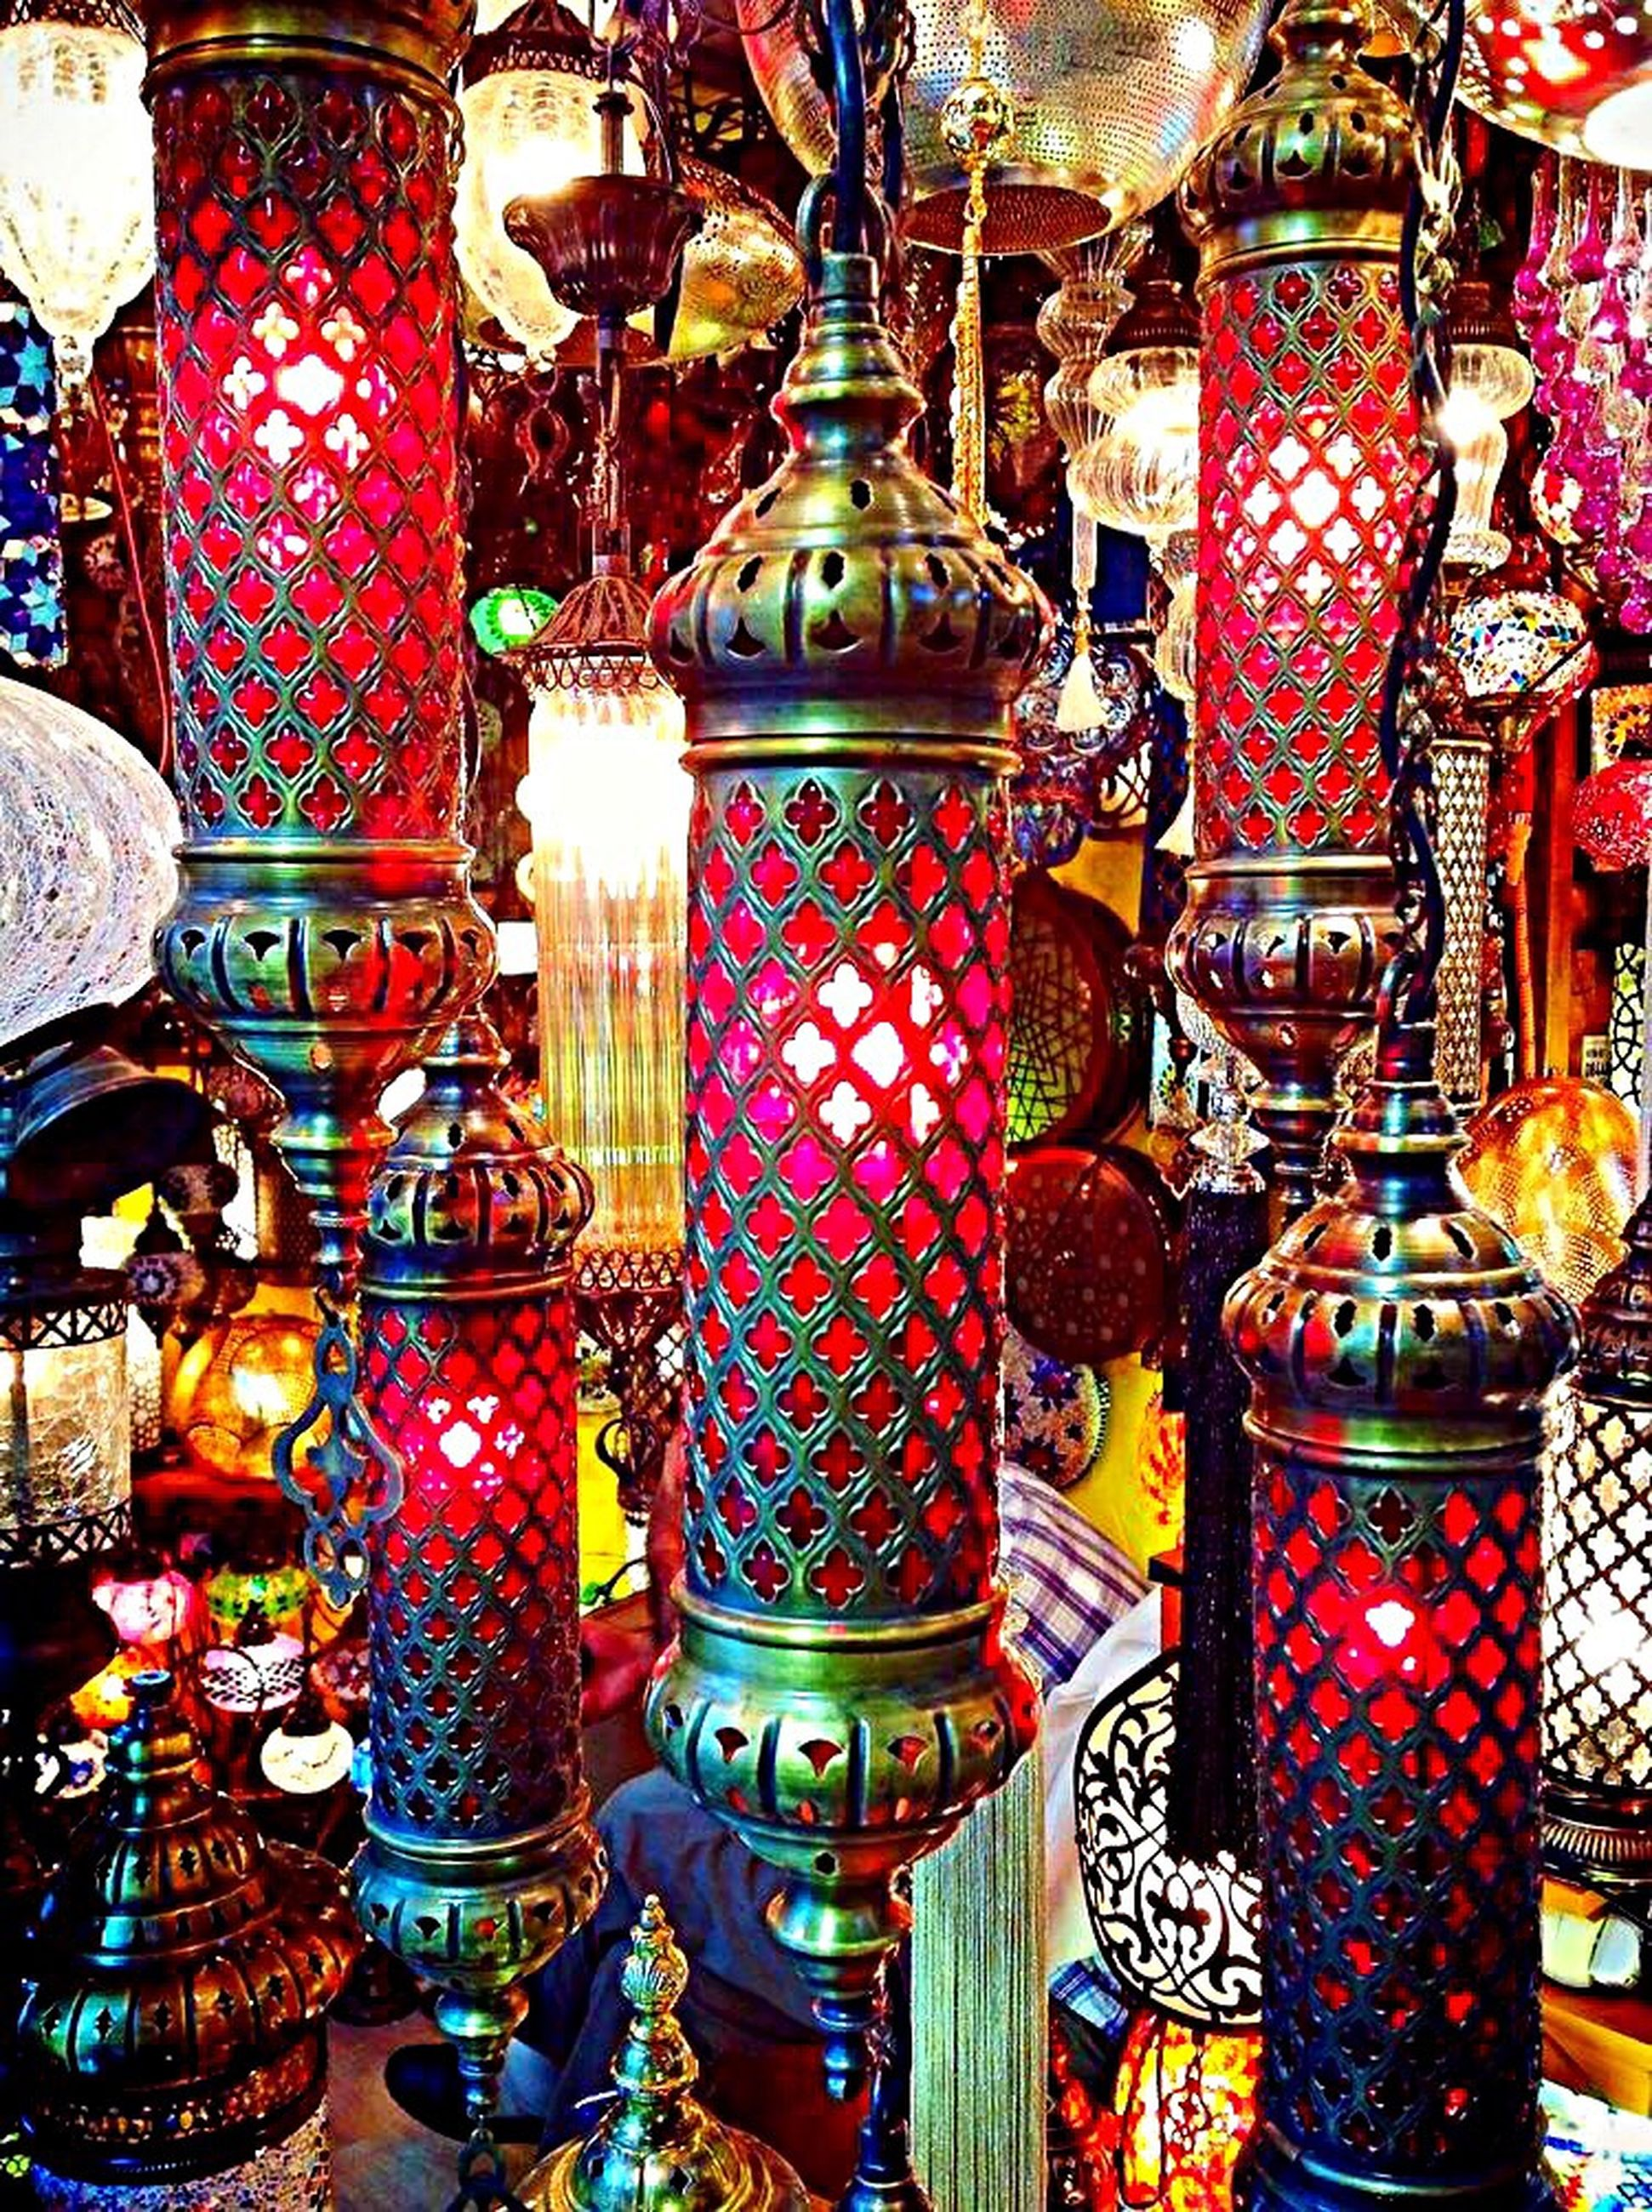 indoors, large group of objects, hanging, retail, abundance, for sale, metal, arrangement, variation, lighting equipment, store, no people, multi colored, in a row, choice, still life, decoration, illuminated, built structure, full frame